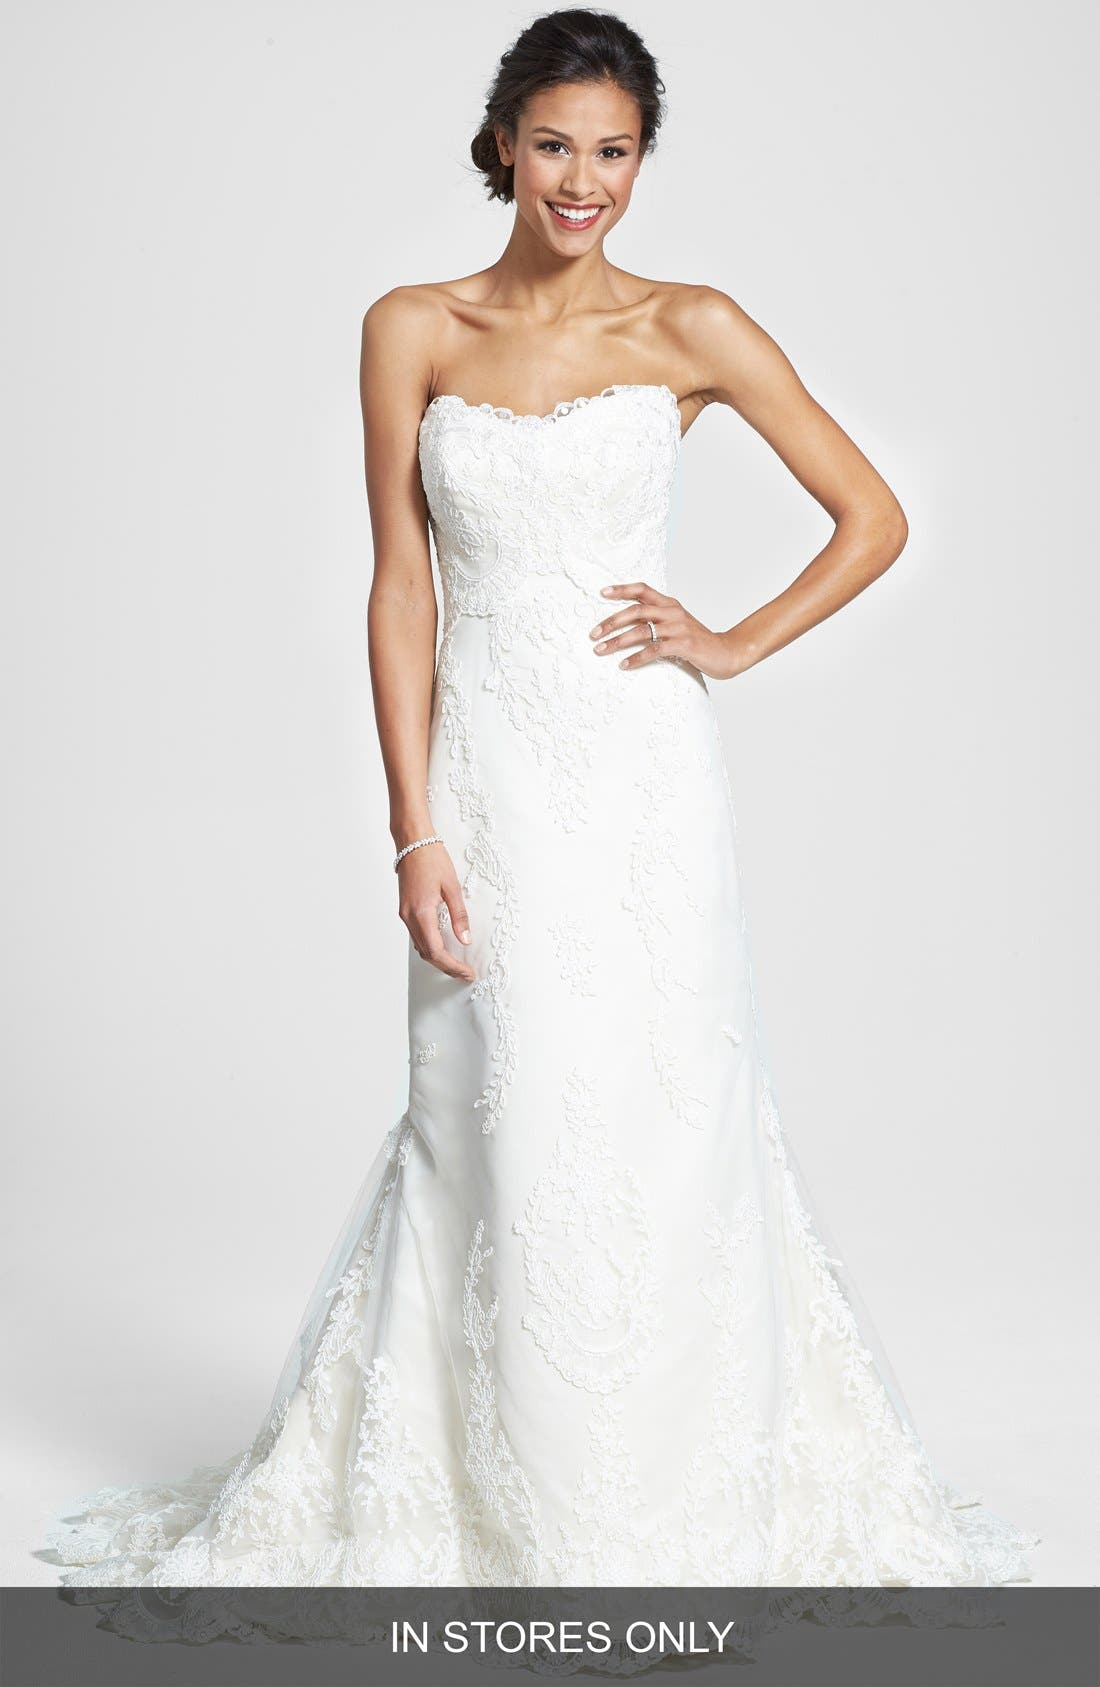 Main Image - James Clifford Collection Embroidered Appliqué Strapless Satin Mermaid Dress (In Stores Only)